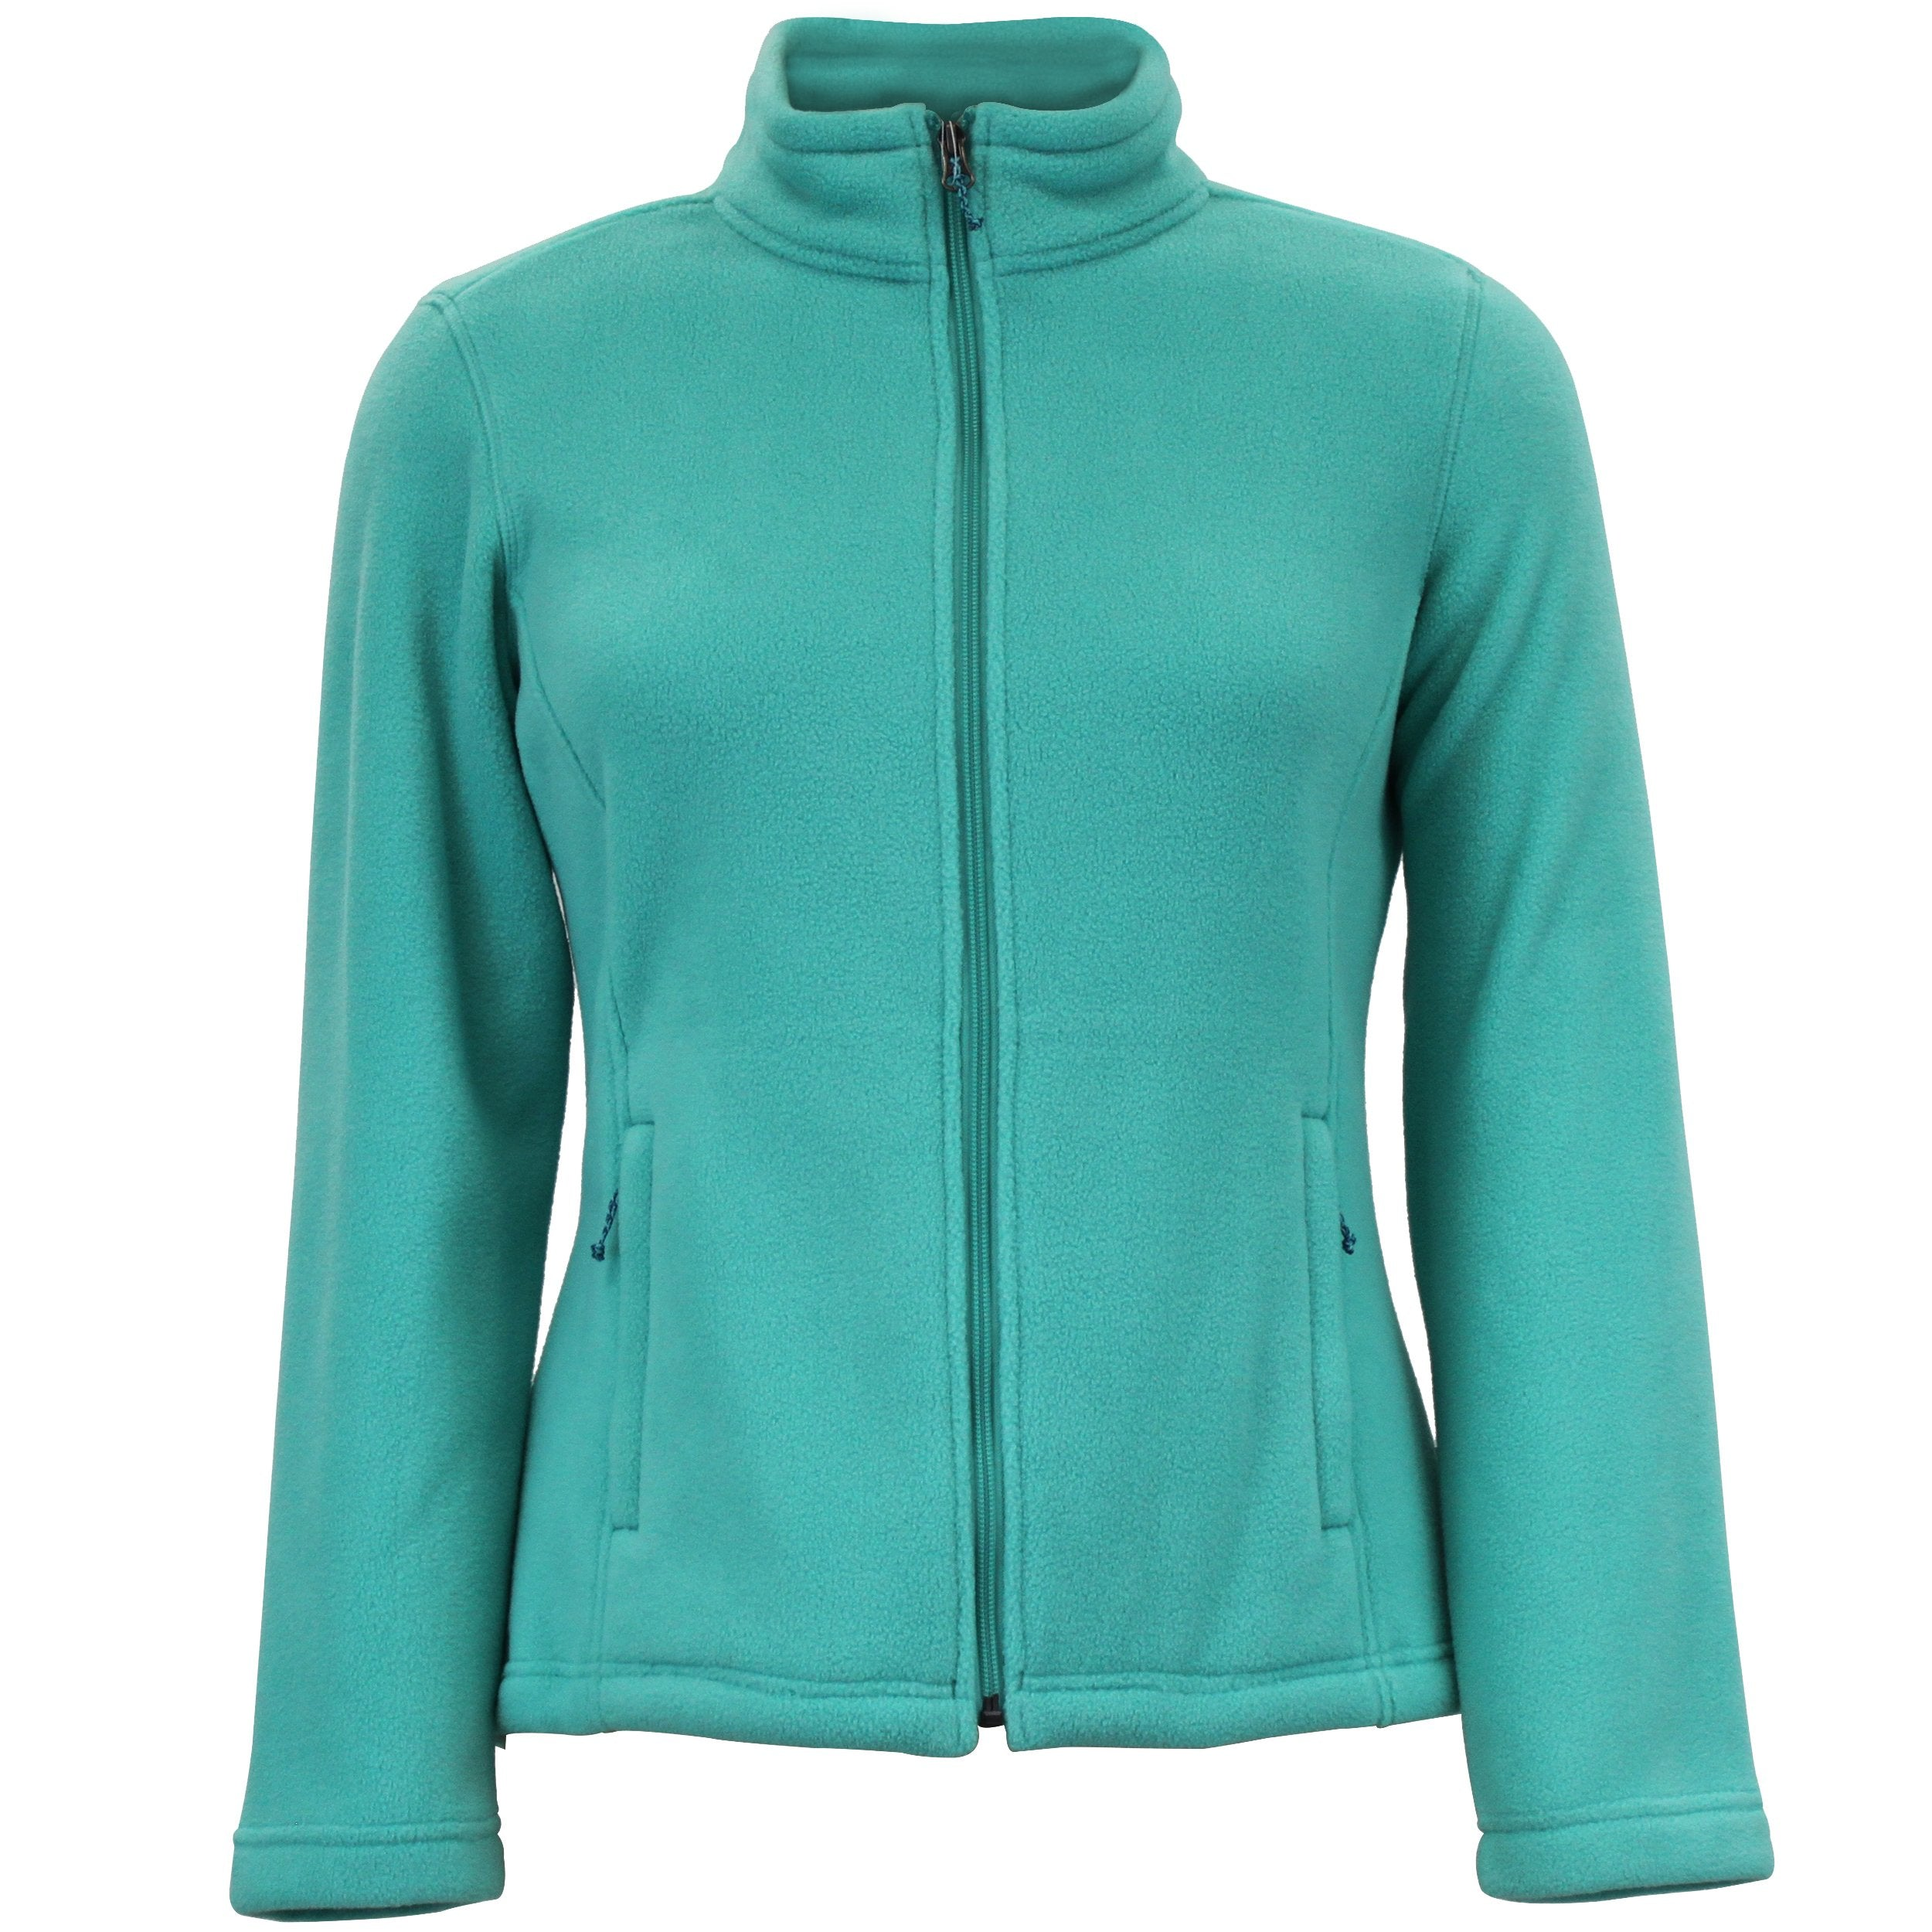 White Sierra Mountain Jacket (Light Turquoise)